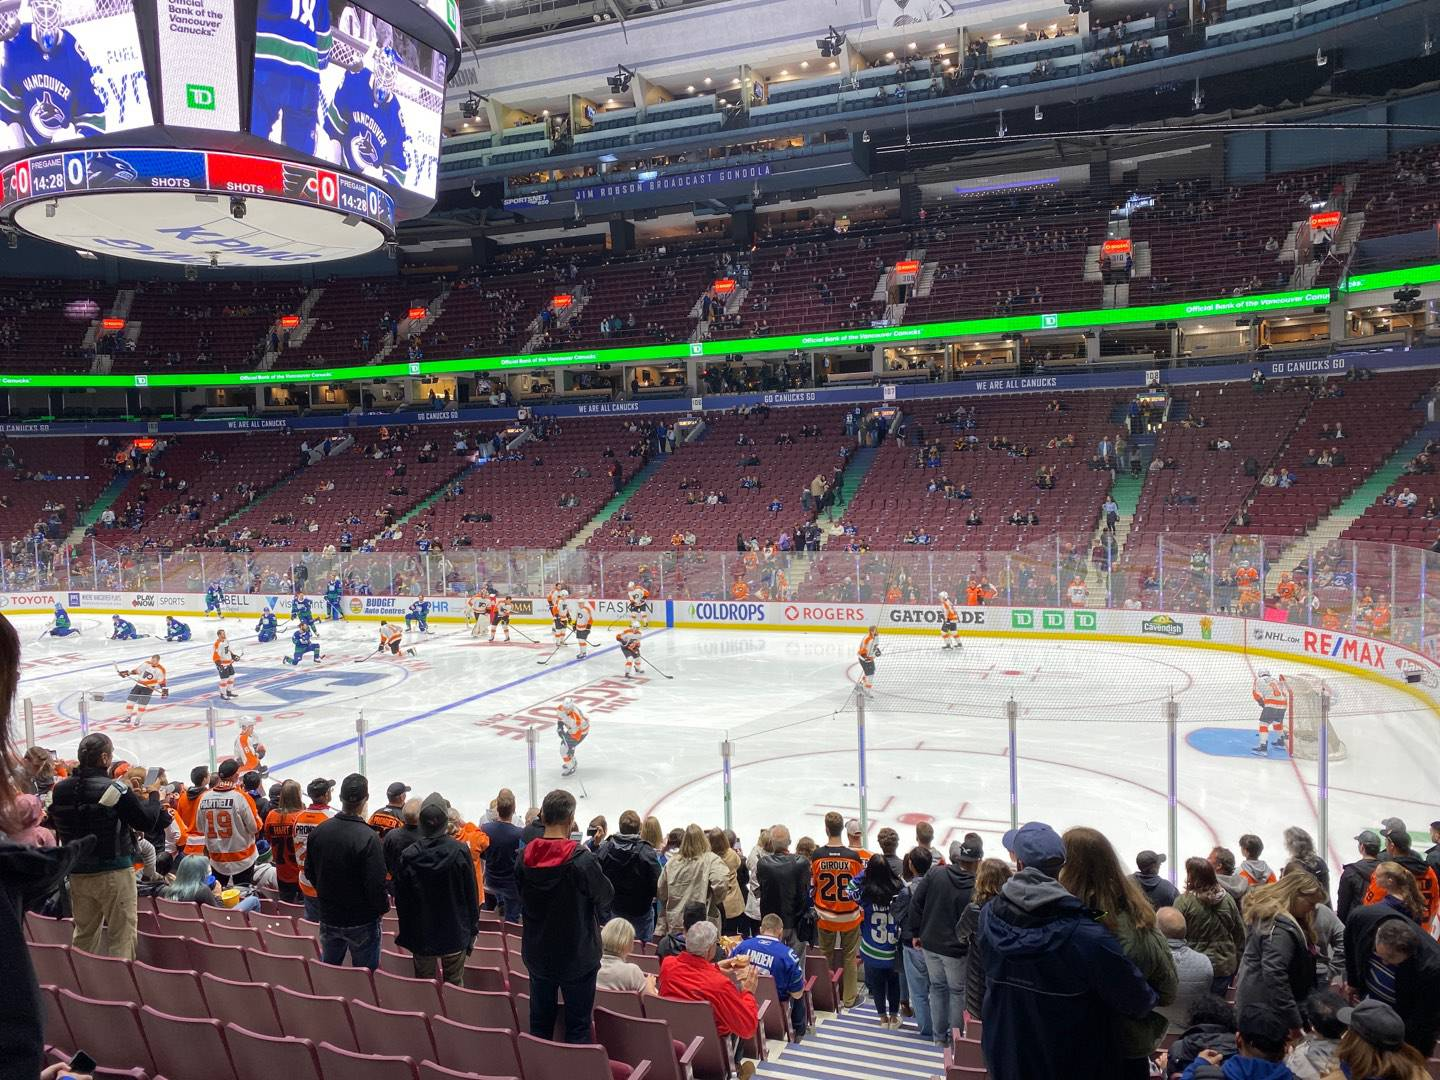 Rogers Arena Section 115 Row 14 Seat 2